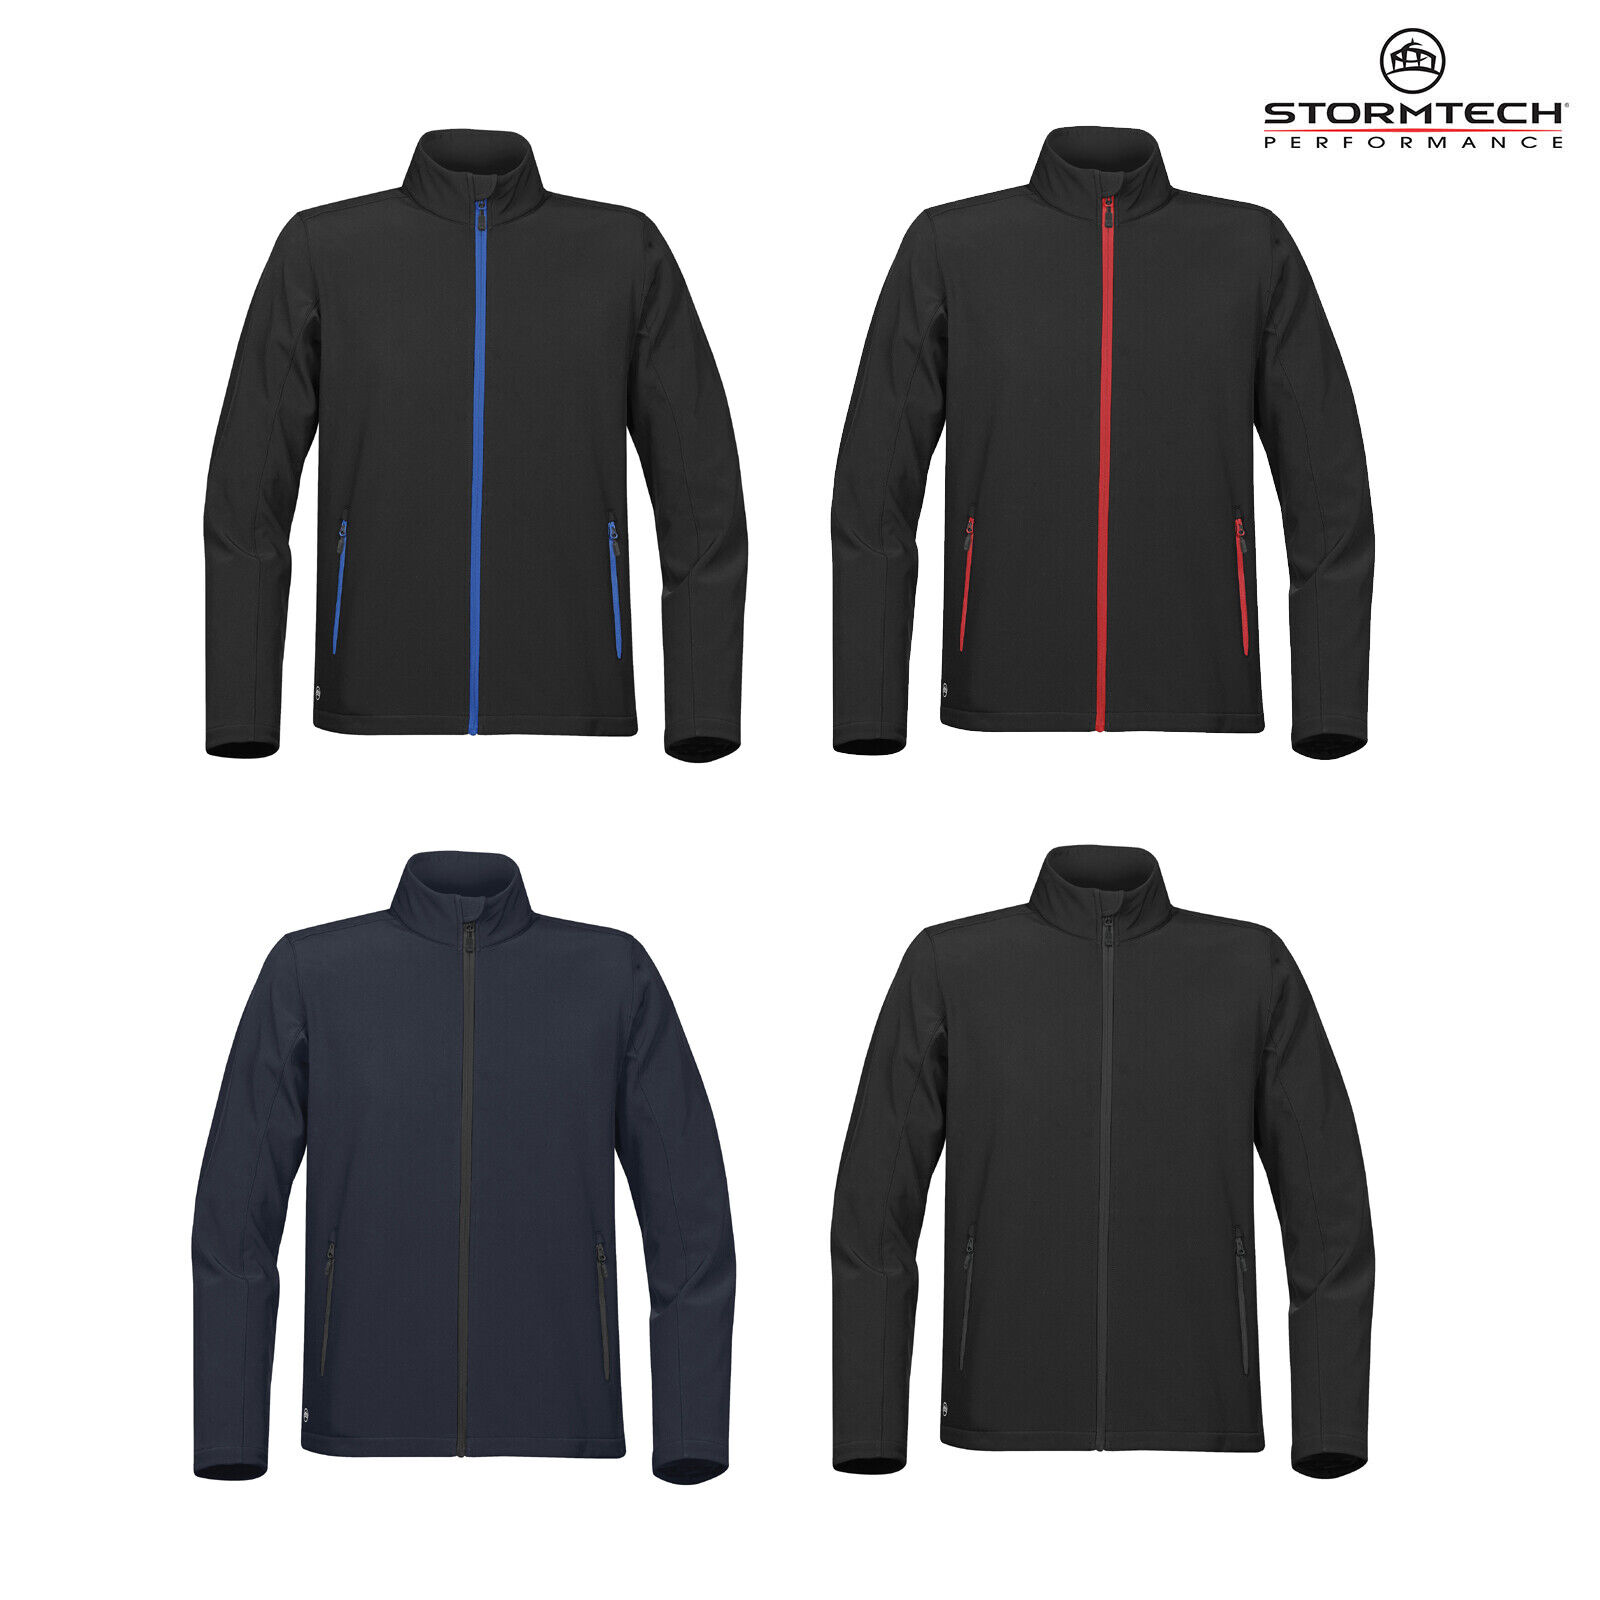 STORMTECH Adulti Orbiter Giacca Softshell KSB1  Impermeabile Unisex Casual in Pile